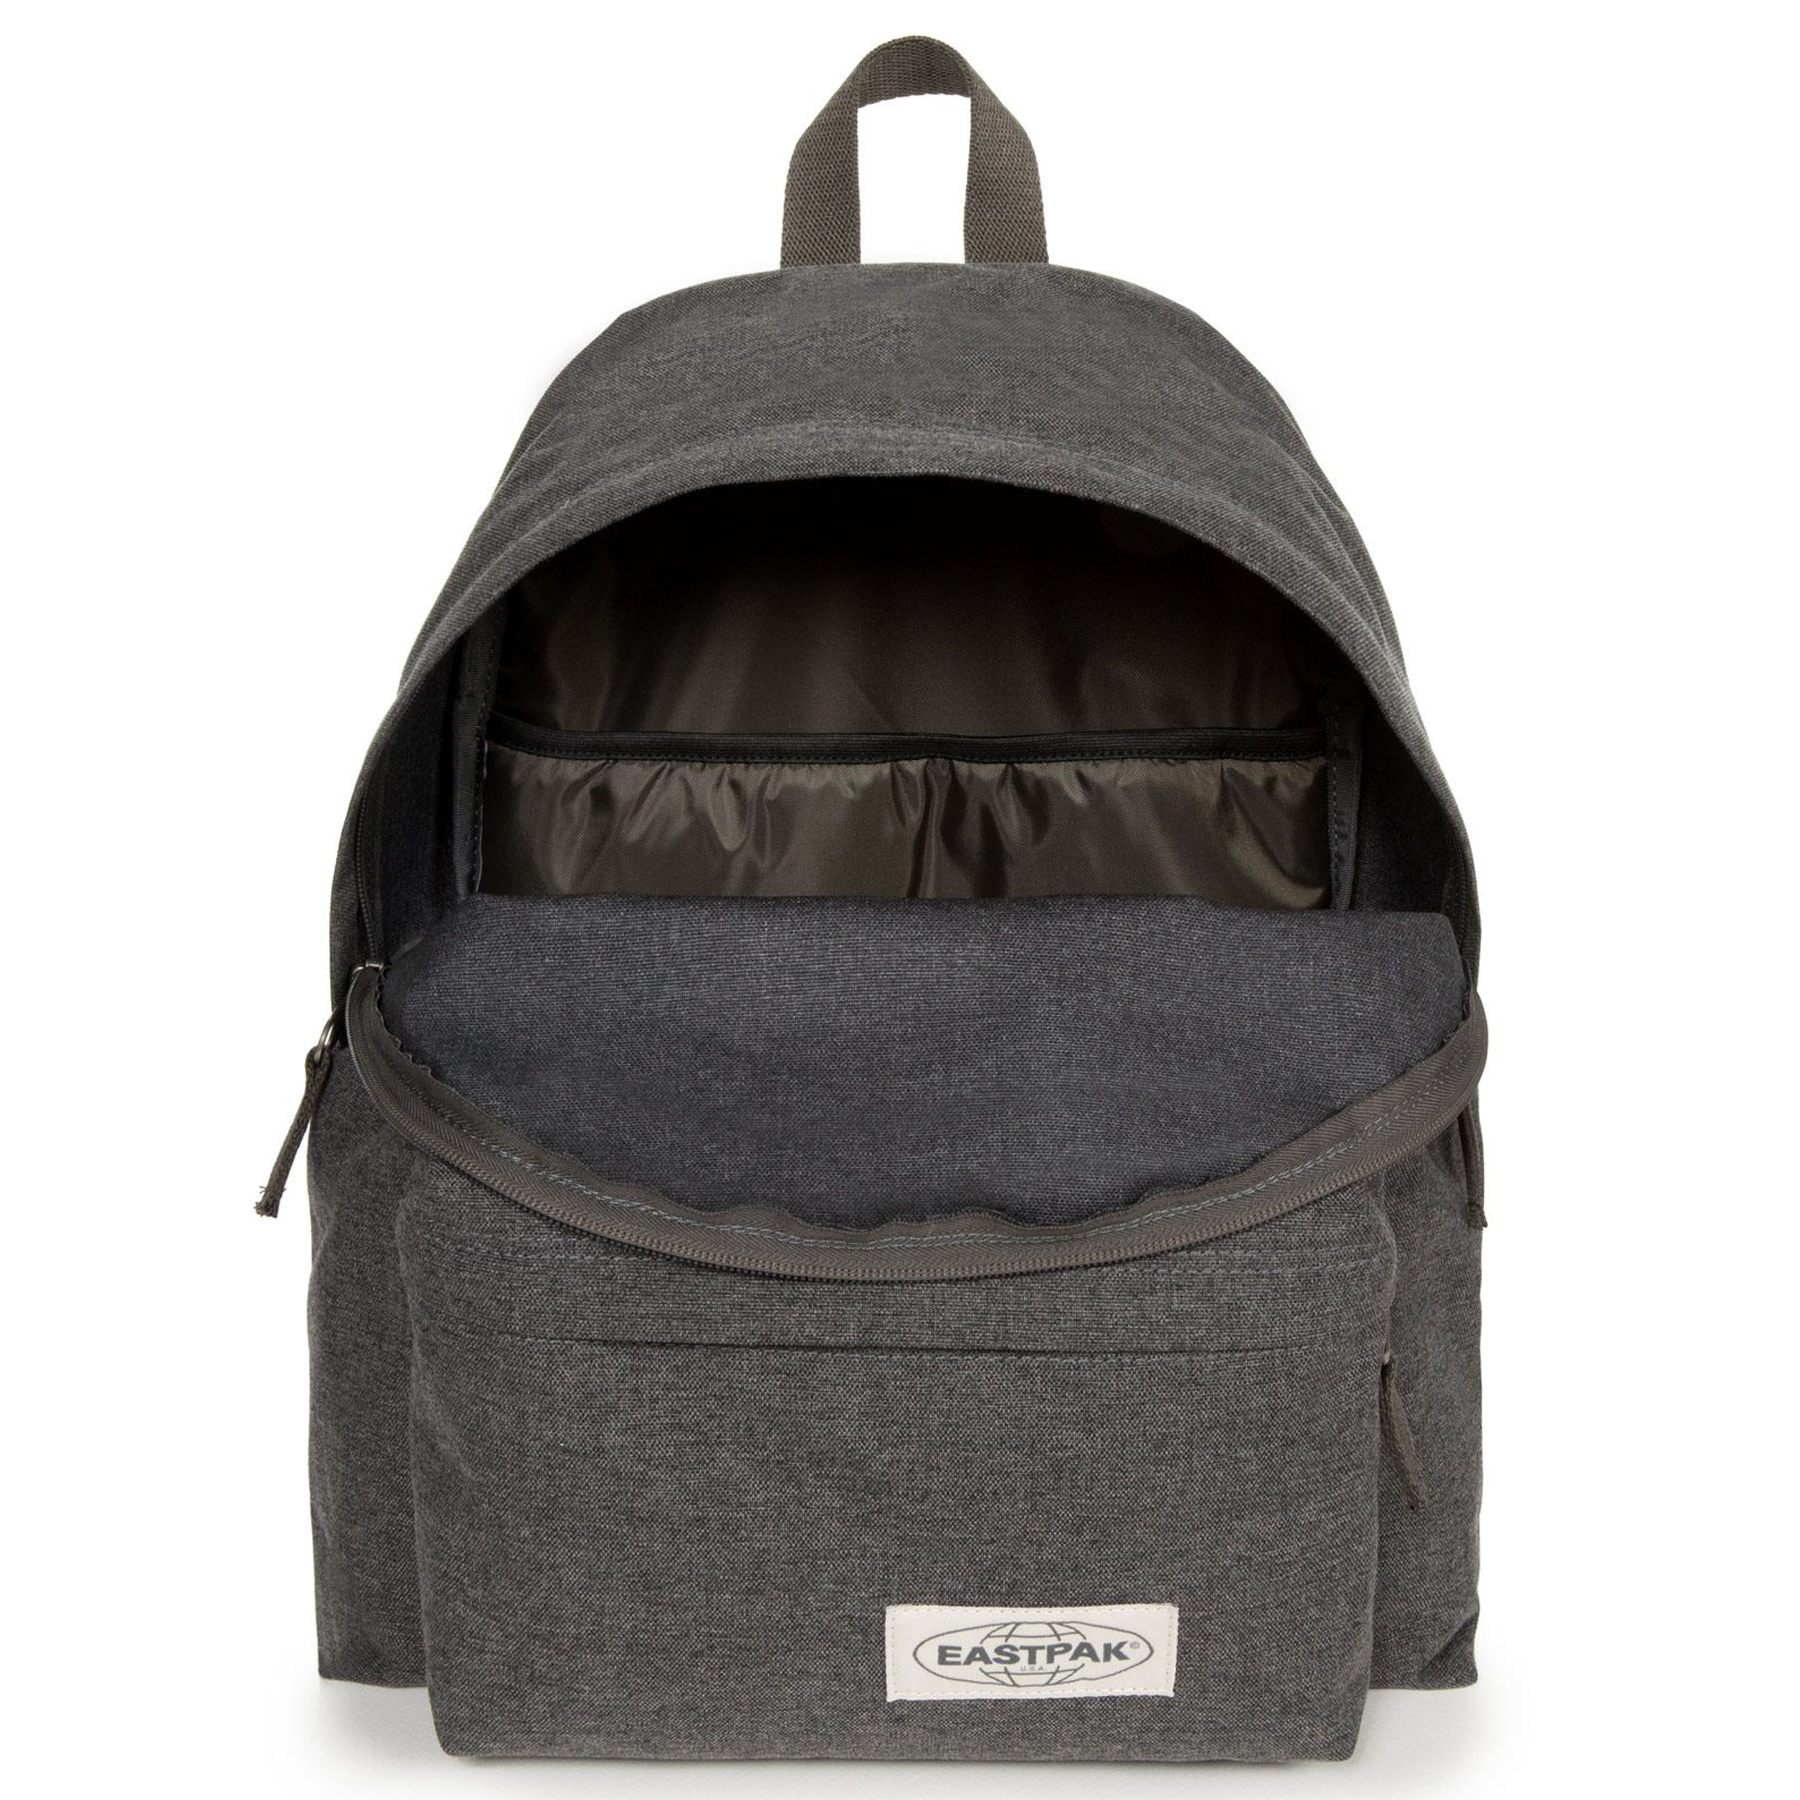 Soldes Sac à Dos Eastpak Padded Pak'r sur Country Attire